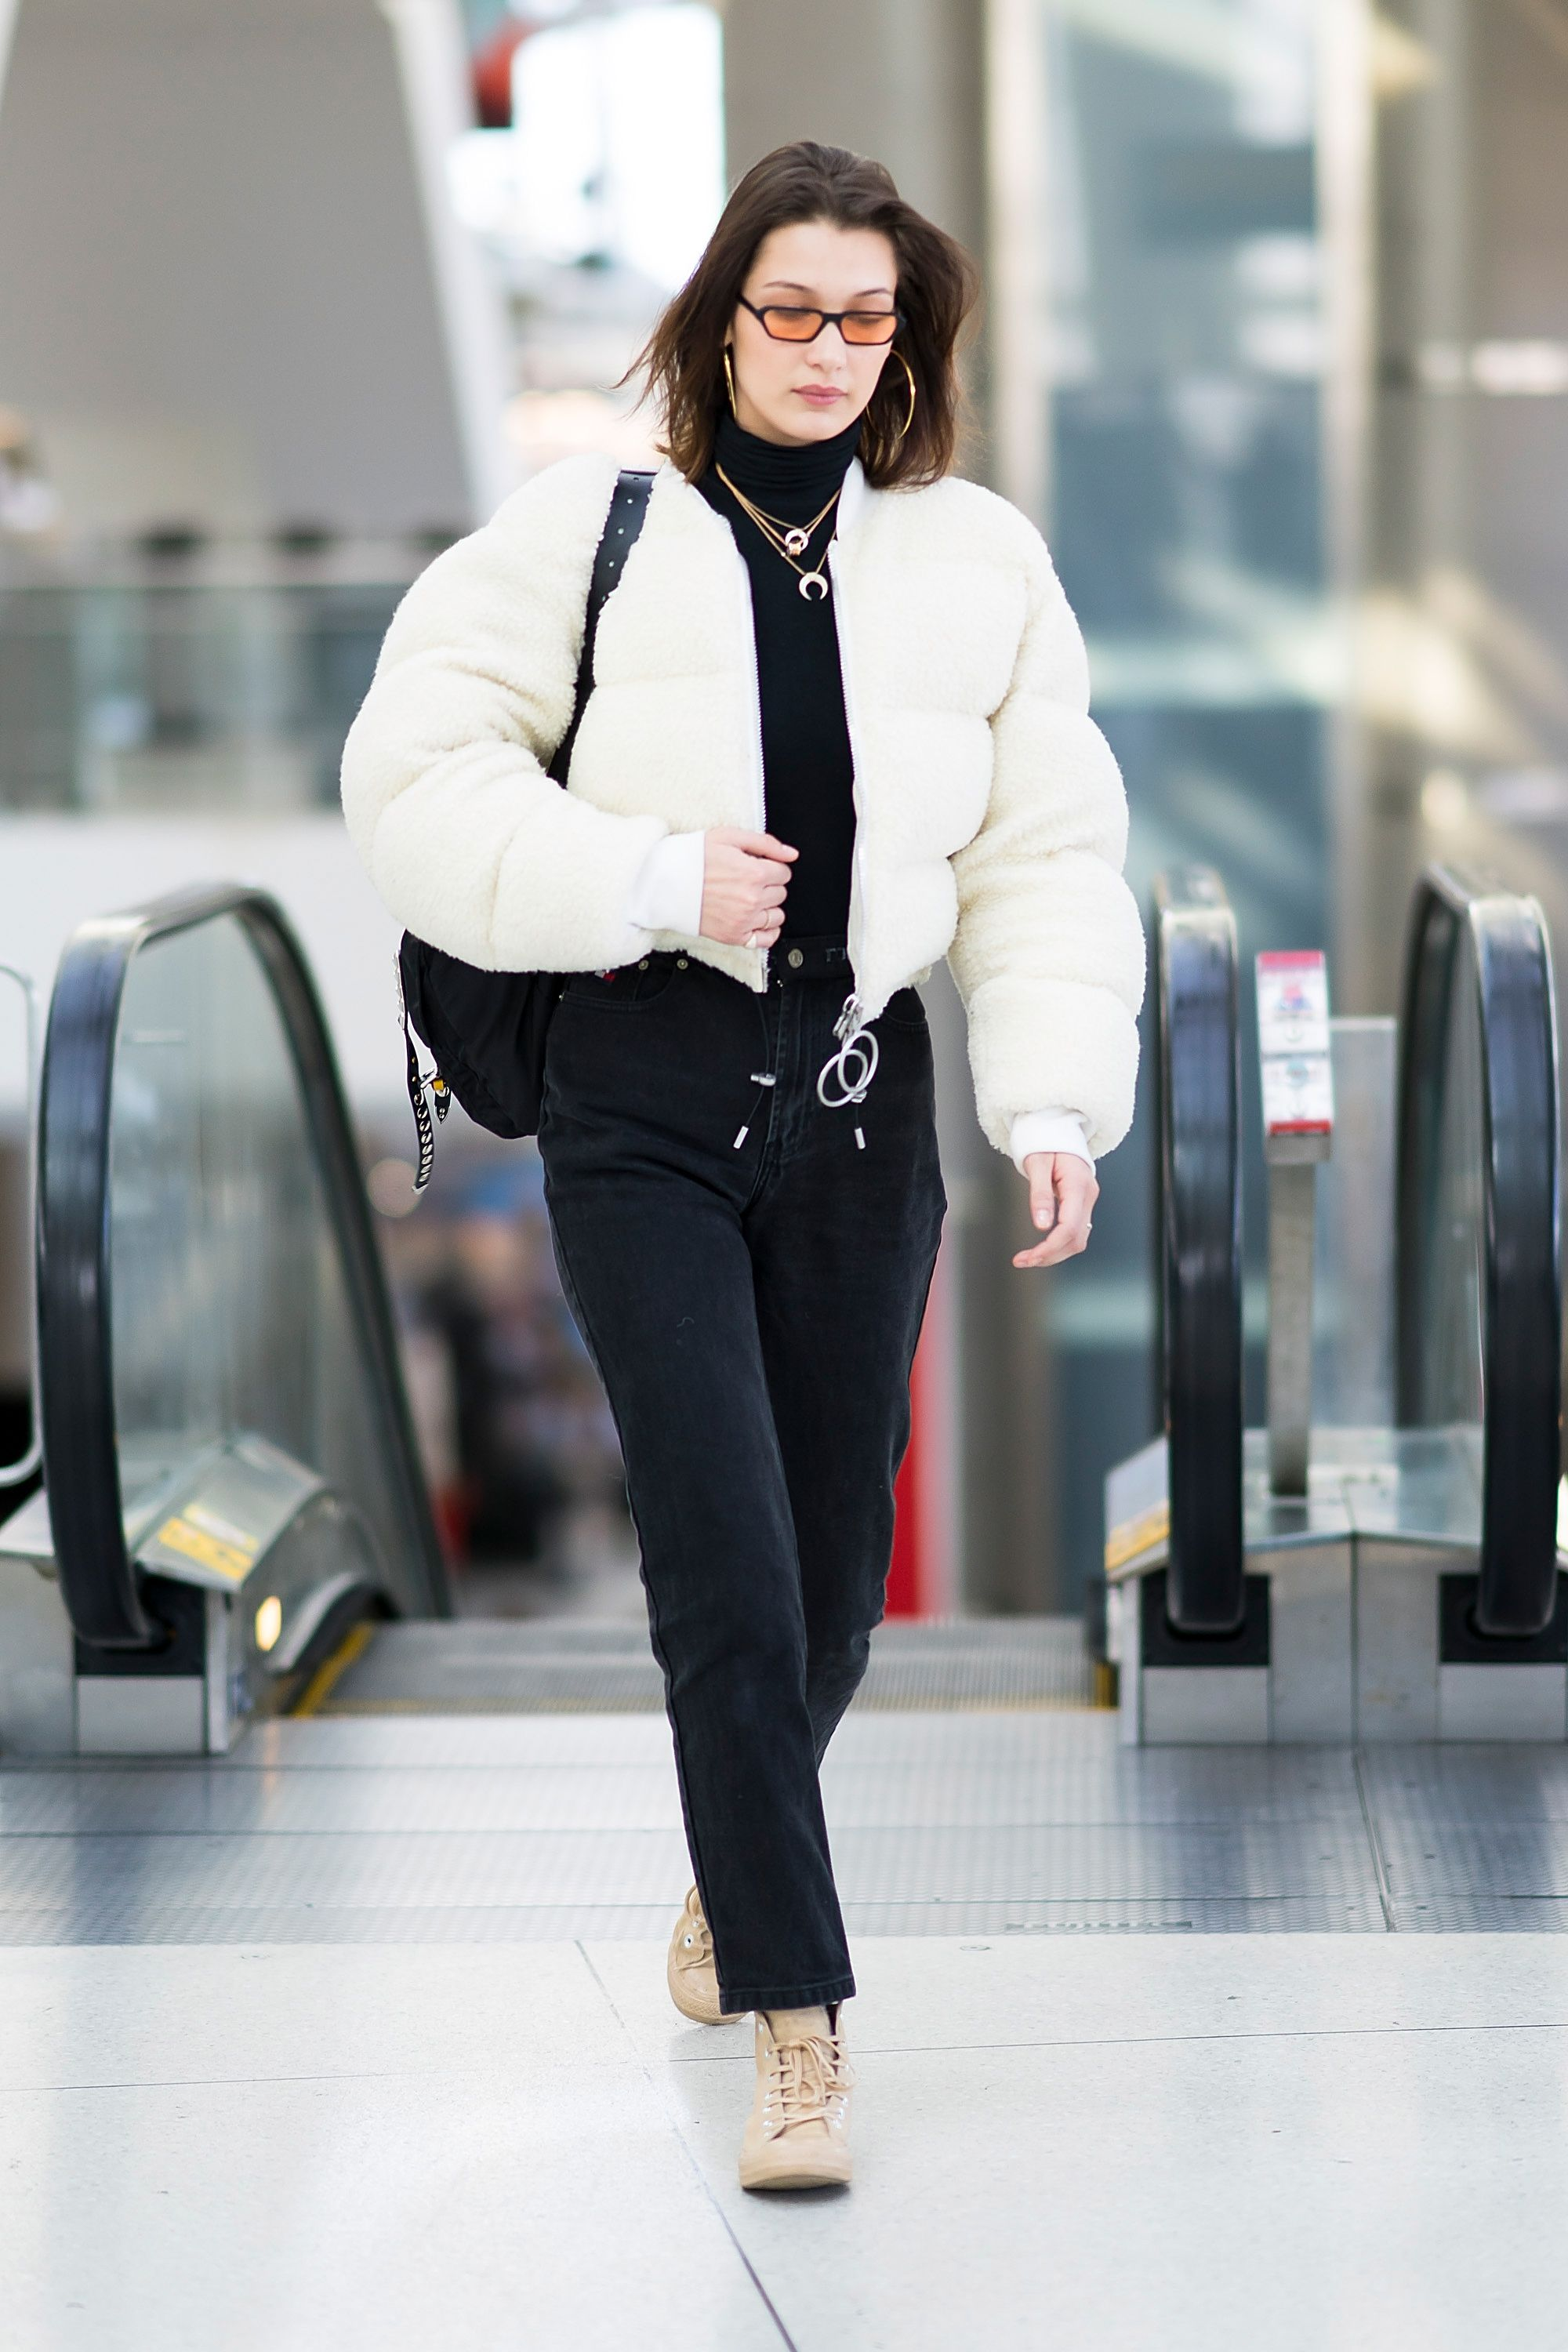 e75c2dba2f3 Celebrities Airport Style - Celebs Airport Fashion Photos